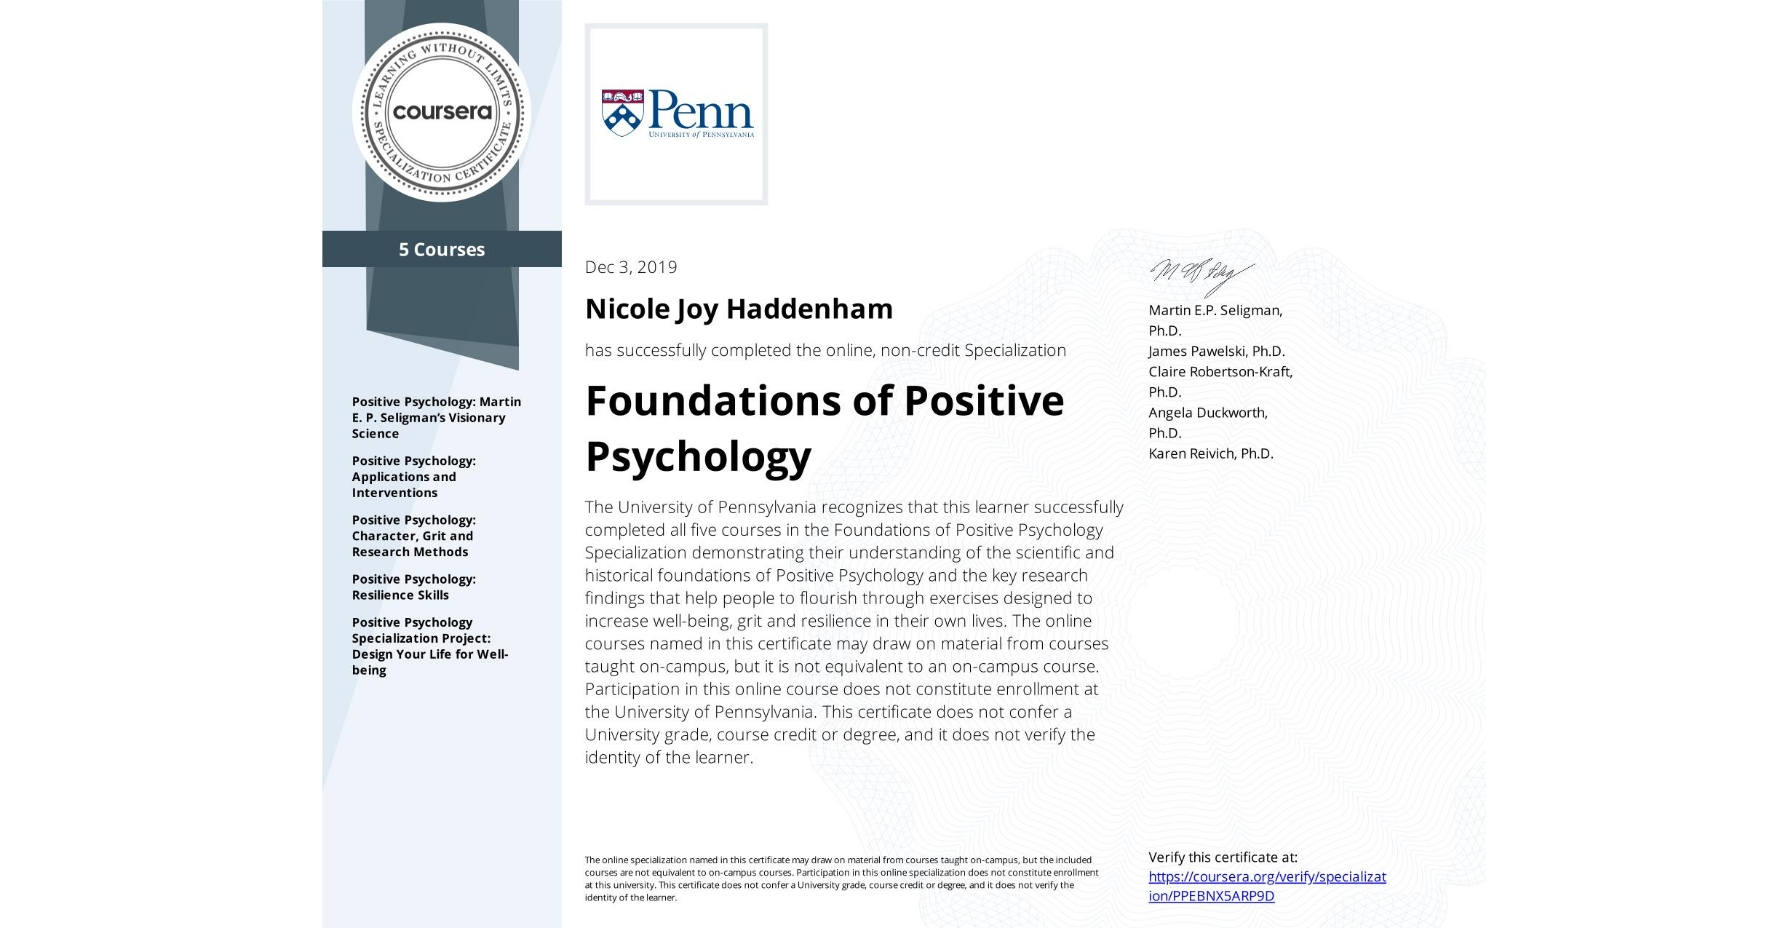 View certificate for Nicole Joy Haddenham, Foundations of Positive Psychology , offered through Coursera. The University of Pennsylvania recognizes that this learner successfully completed all five courses in the Foundations of Positive Psychology Specialization demonstrating their understanding of the scientific and historical foundations of Positive Psychology and the key research findings that help people to flourish through exercises designed to increase well-being, grit and resilience in their own lives. The online courses named in this certificate may draw on material from courses taught on-campus, but it is not equivalent to an on-campus course.  Participation in this online course does not constitute enrollment at the University of Pennsylvania. This certificate does not confer a University grade, course credit or degree, and it does not verify the identity of the learner.